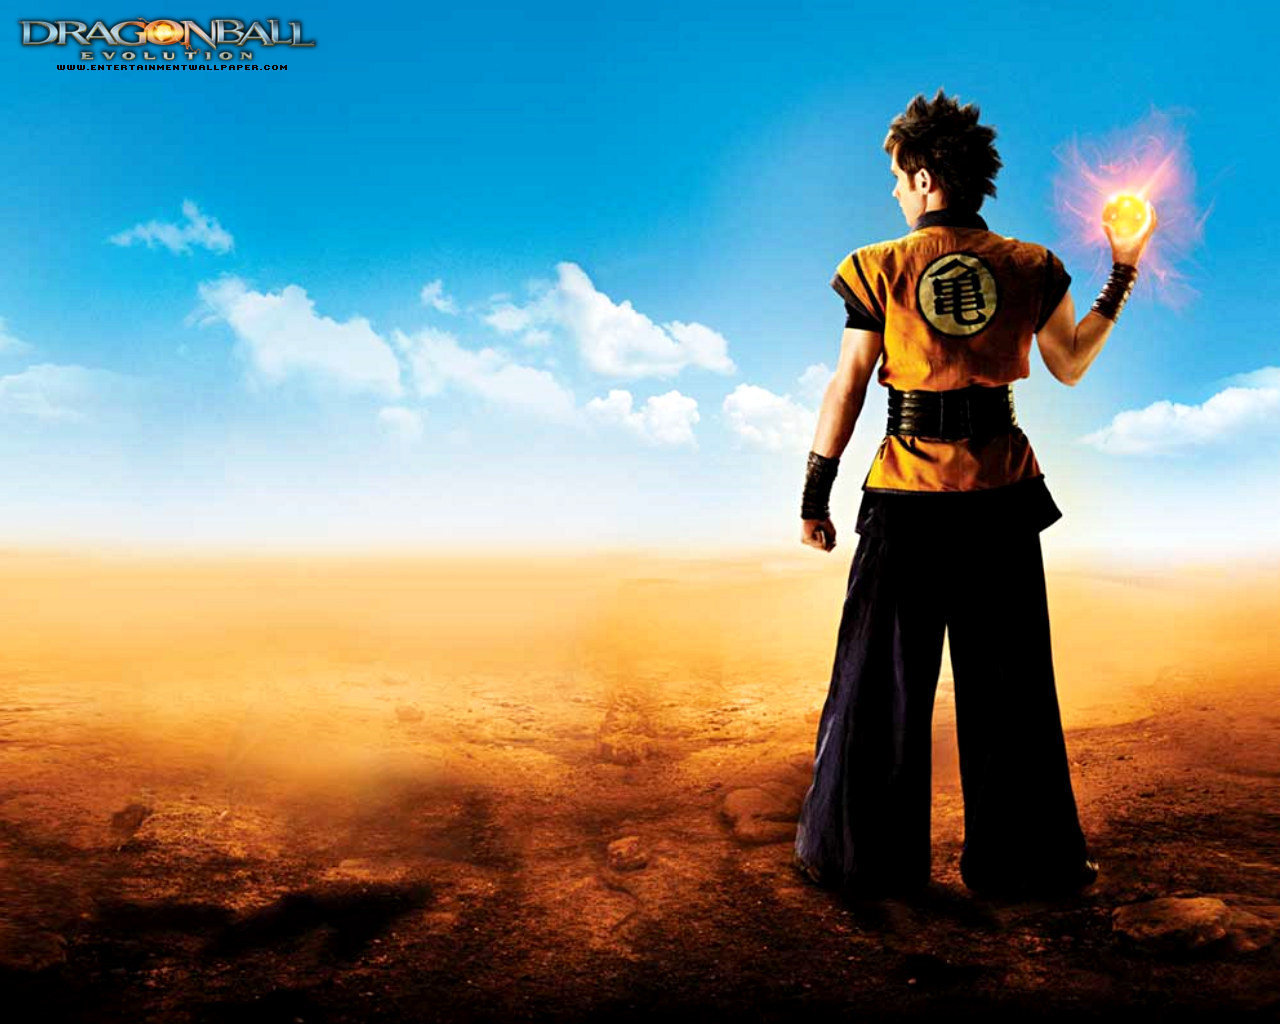 Dragonball The Movie images Dragonball Evolution HD wallpaper